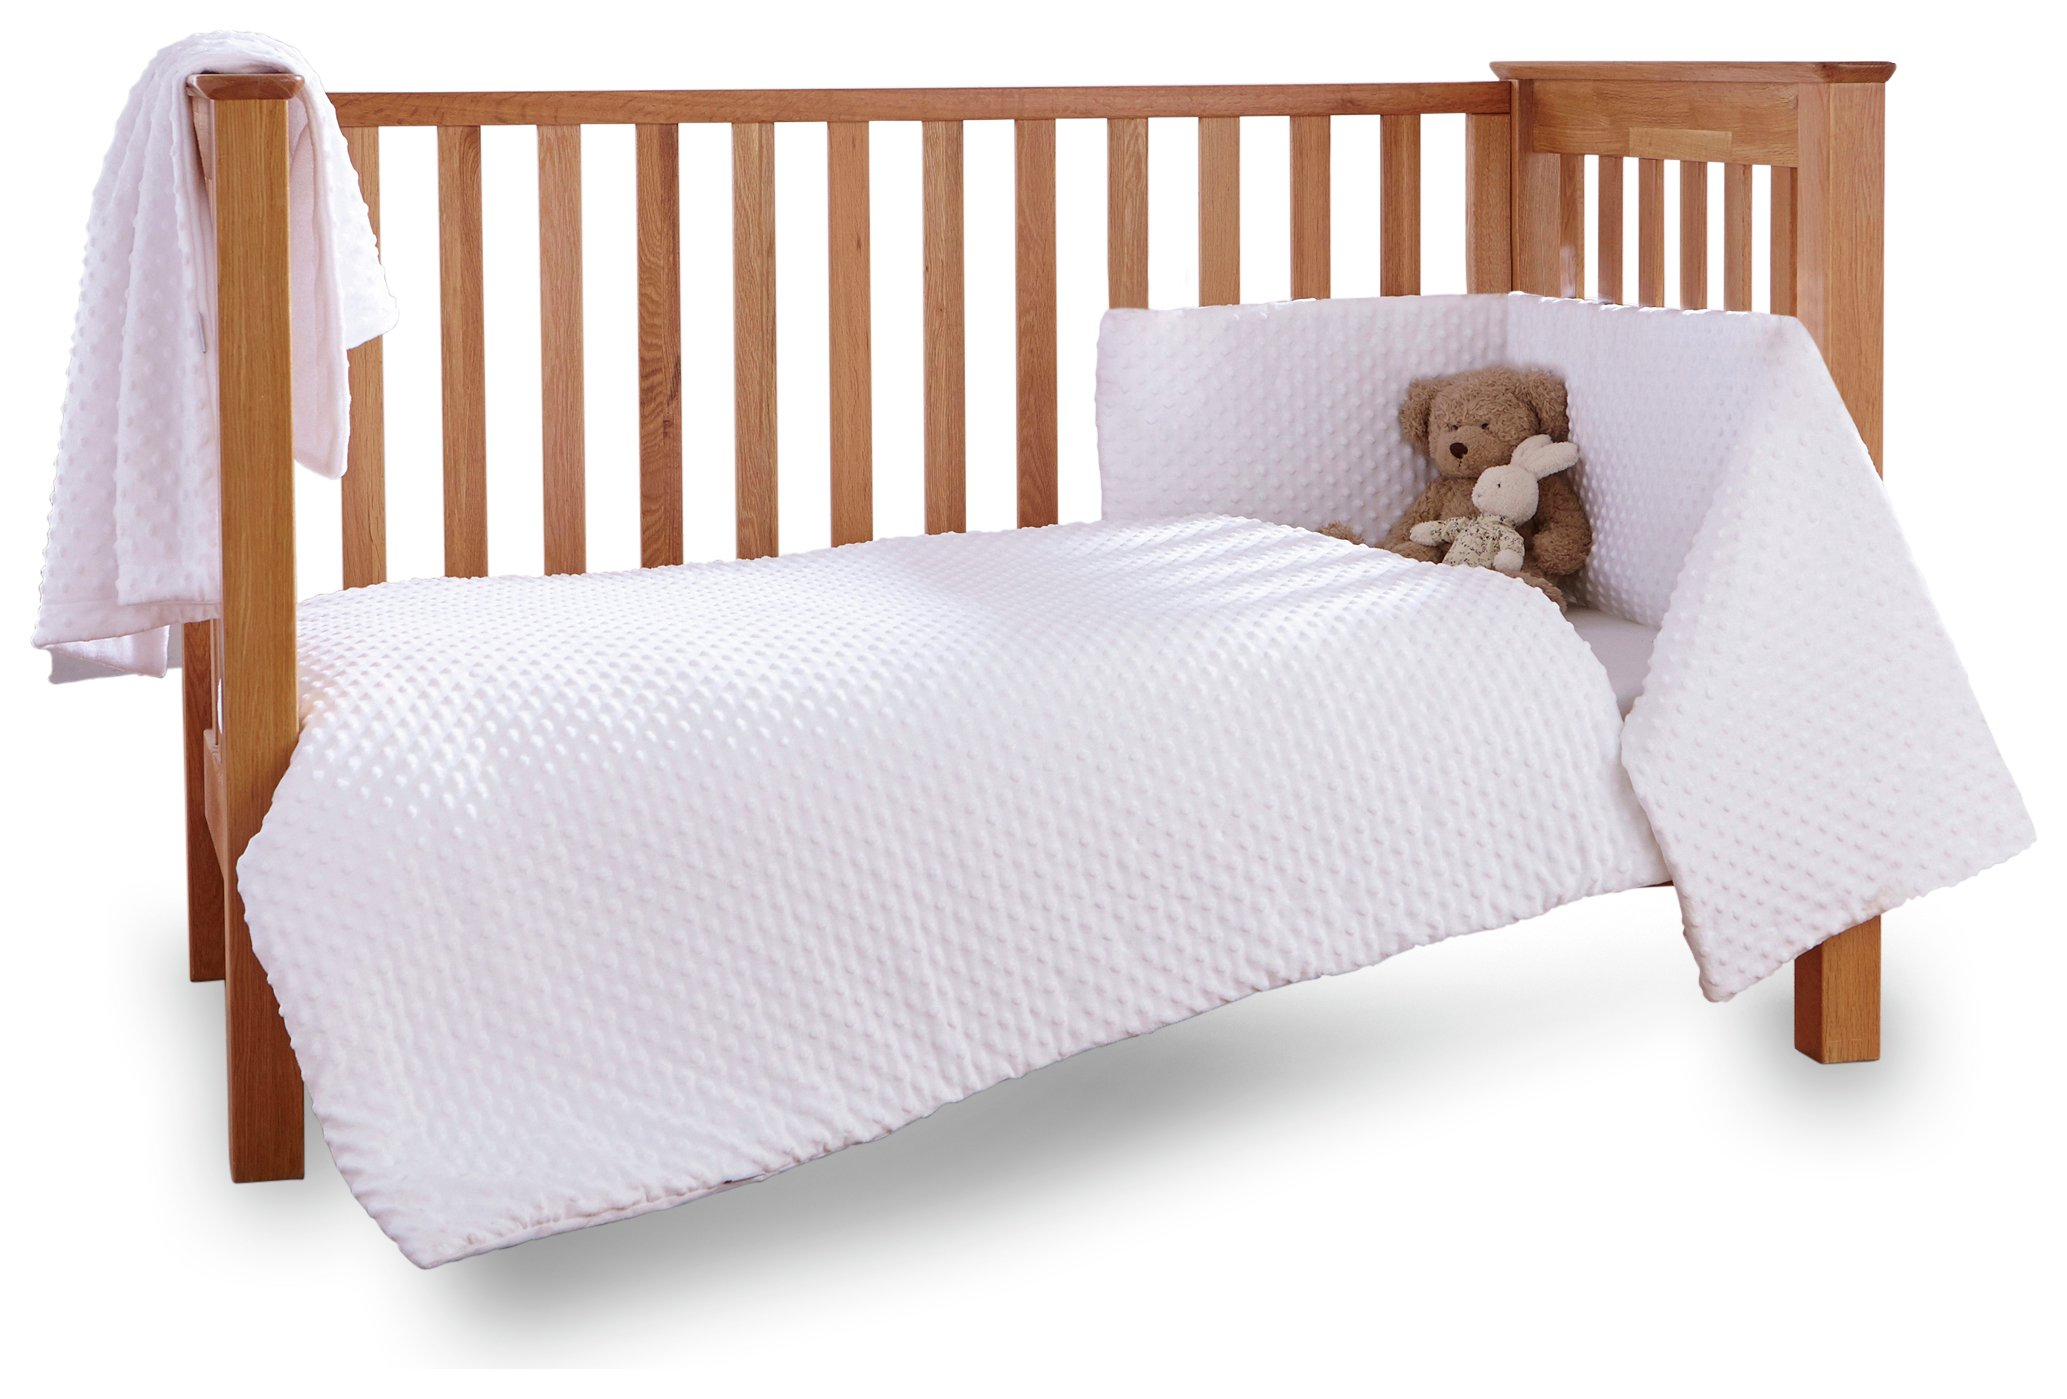 clair-de-lune-dimple-3-piece-cotcot-bed-set-white